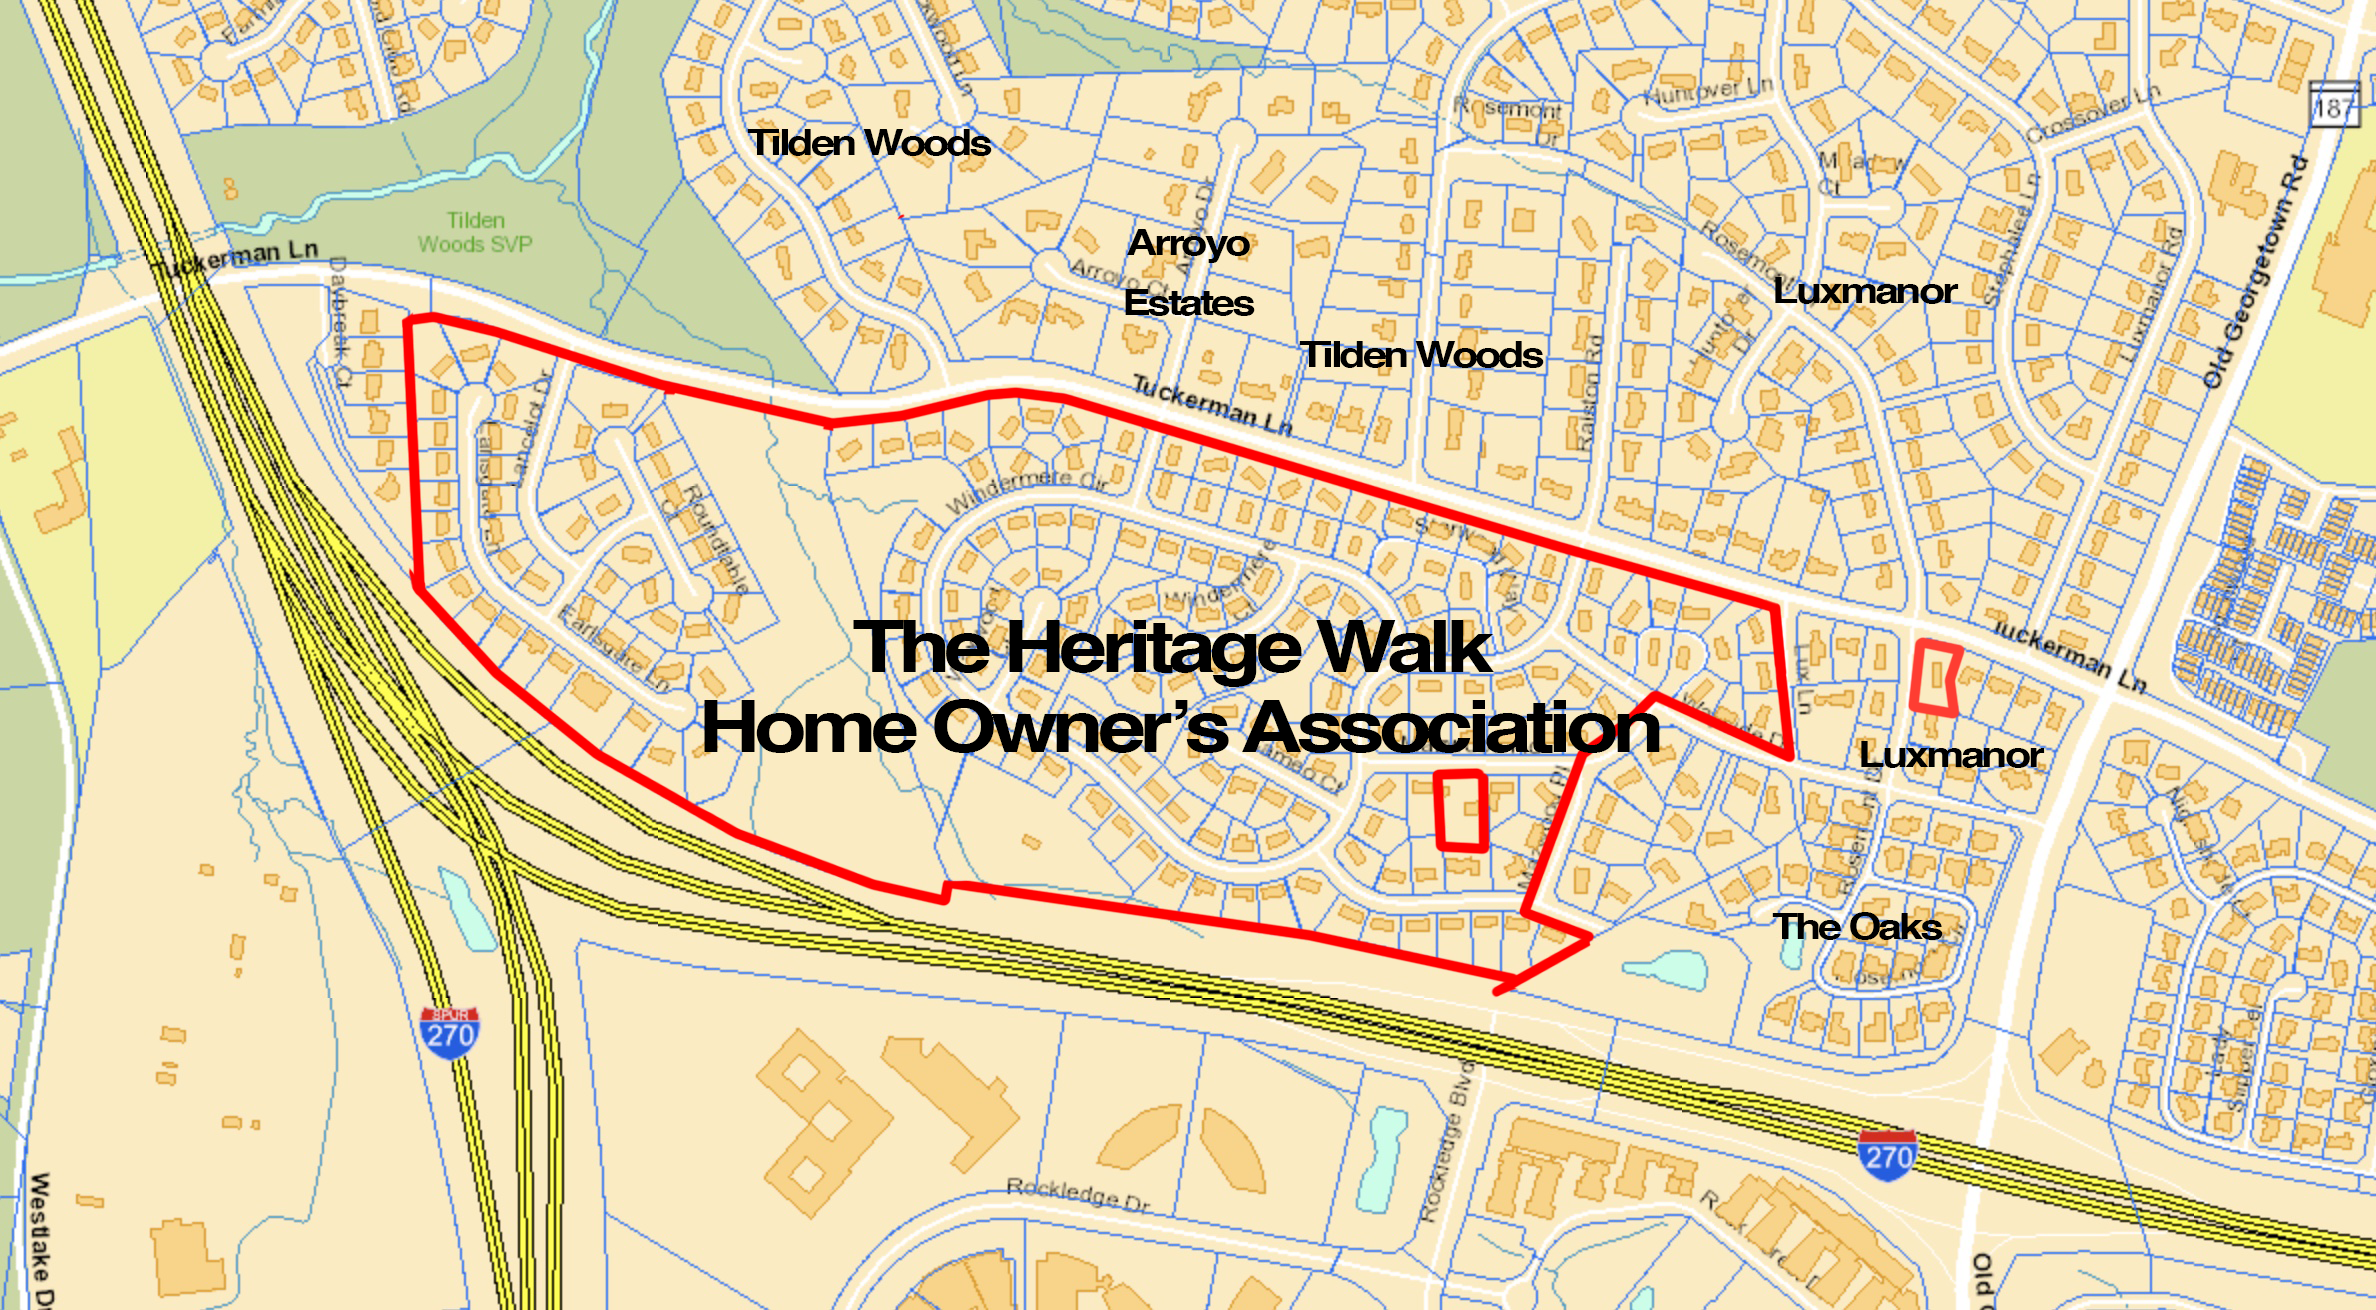 This map depicts the boundaries within the HOA, commonly known as Windermere I.